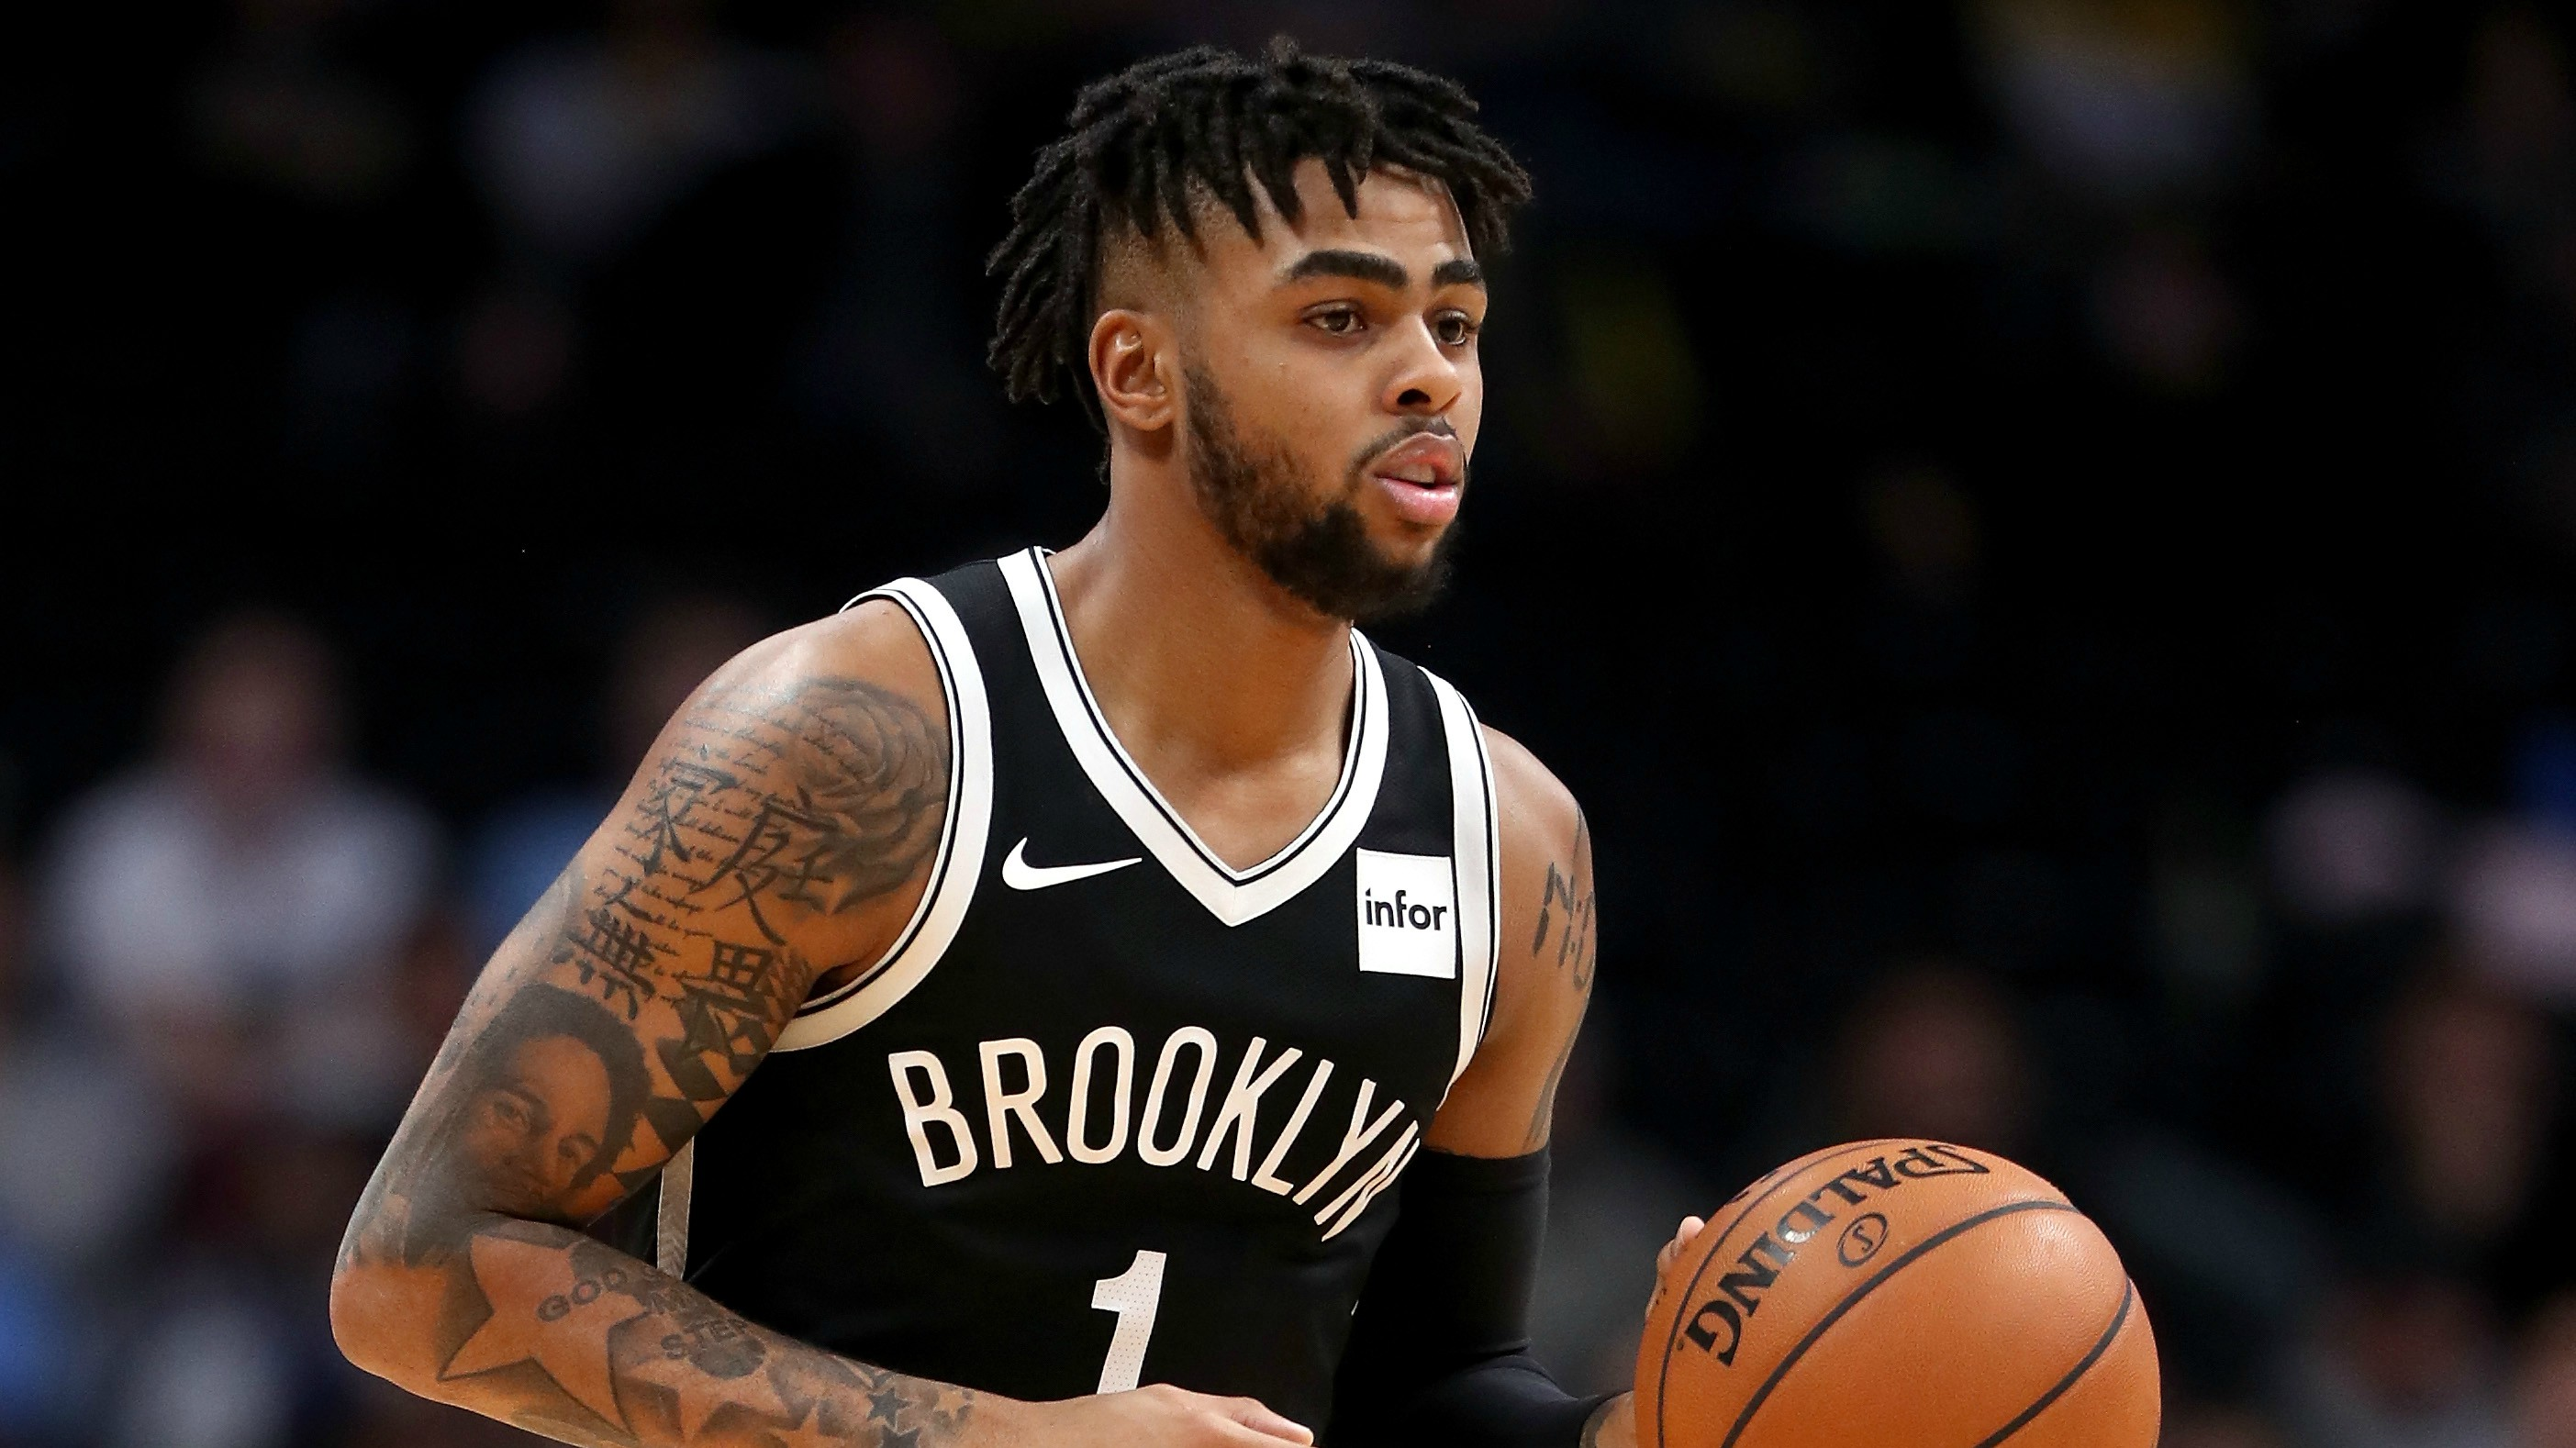 D'Angelo Russell will miss multiple games with a knee contusion.